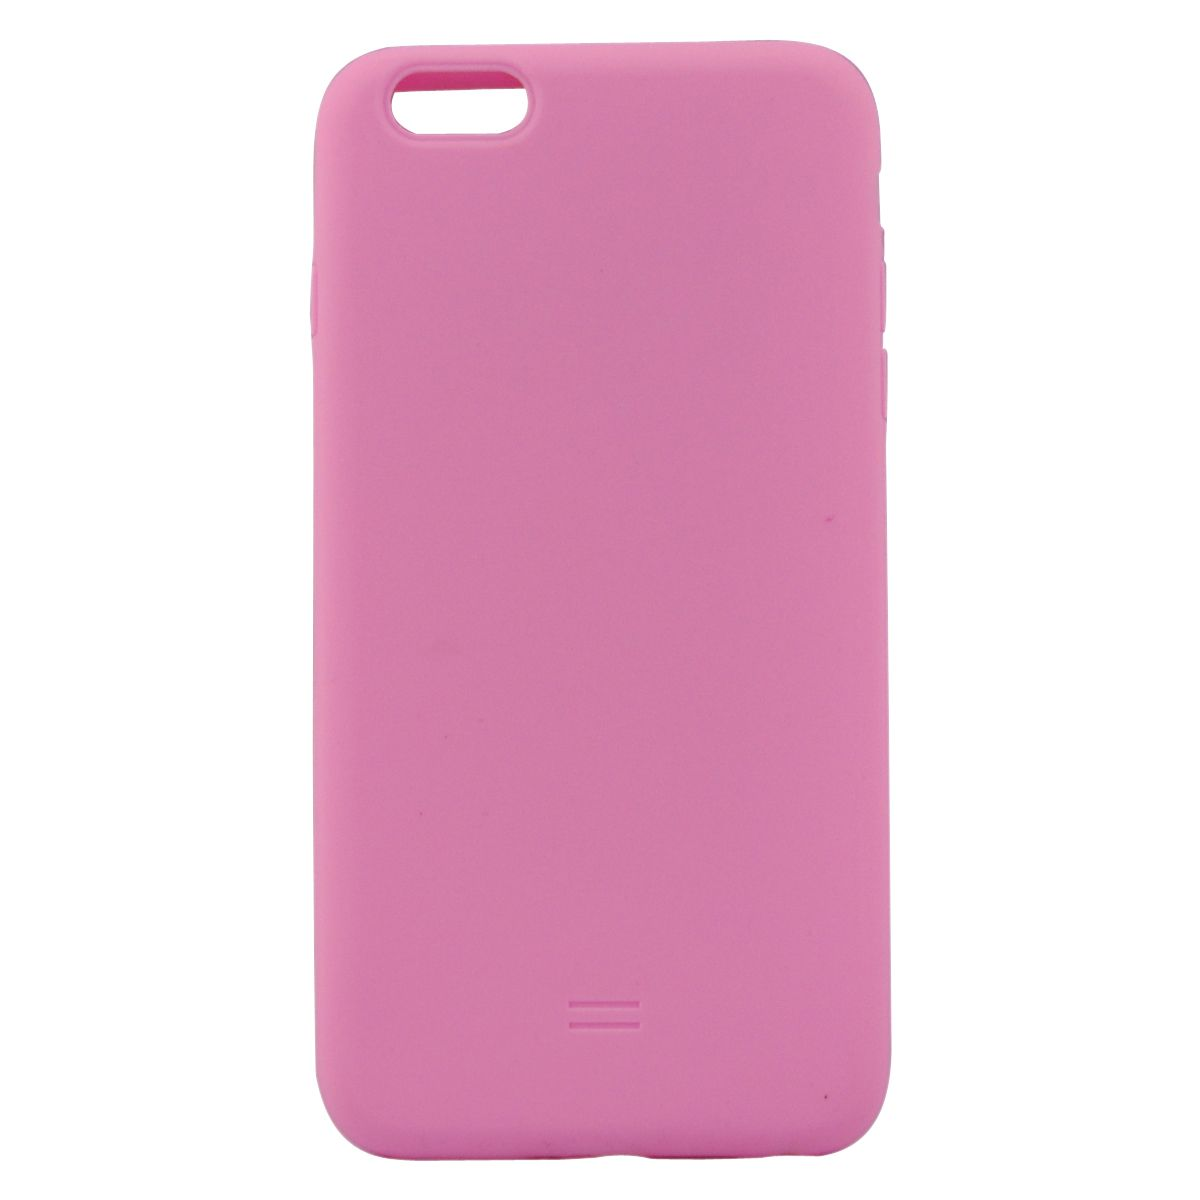 The 100 best 0.99 dollar for one phone case images on Pinterest ...